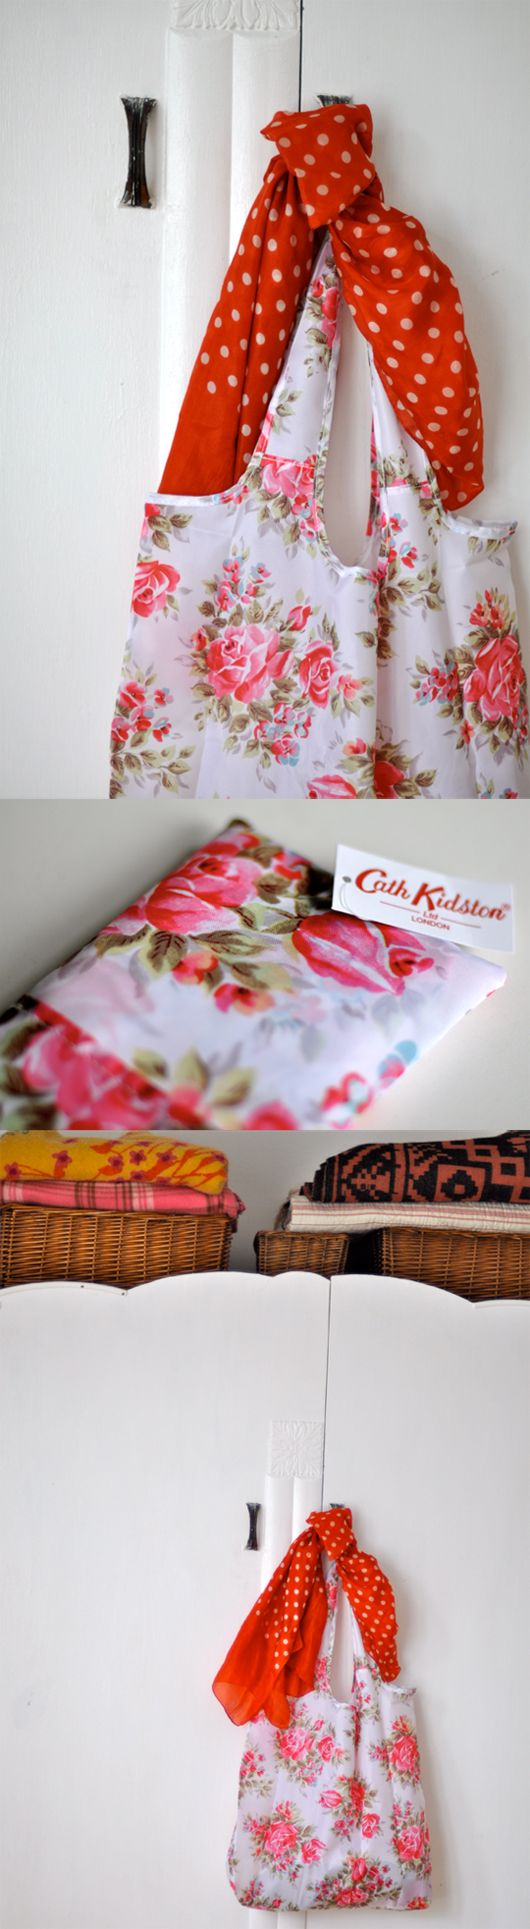 30 best on cath kidstons days images on pinterest cath kidston no joke this cath kidston print is my chrome background with hot pink tabs doublecrazyfo Images